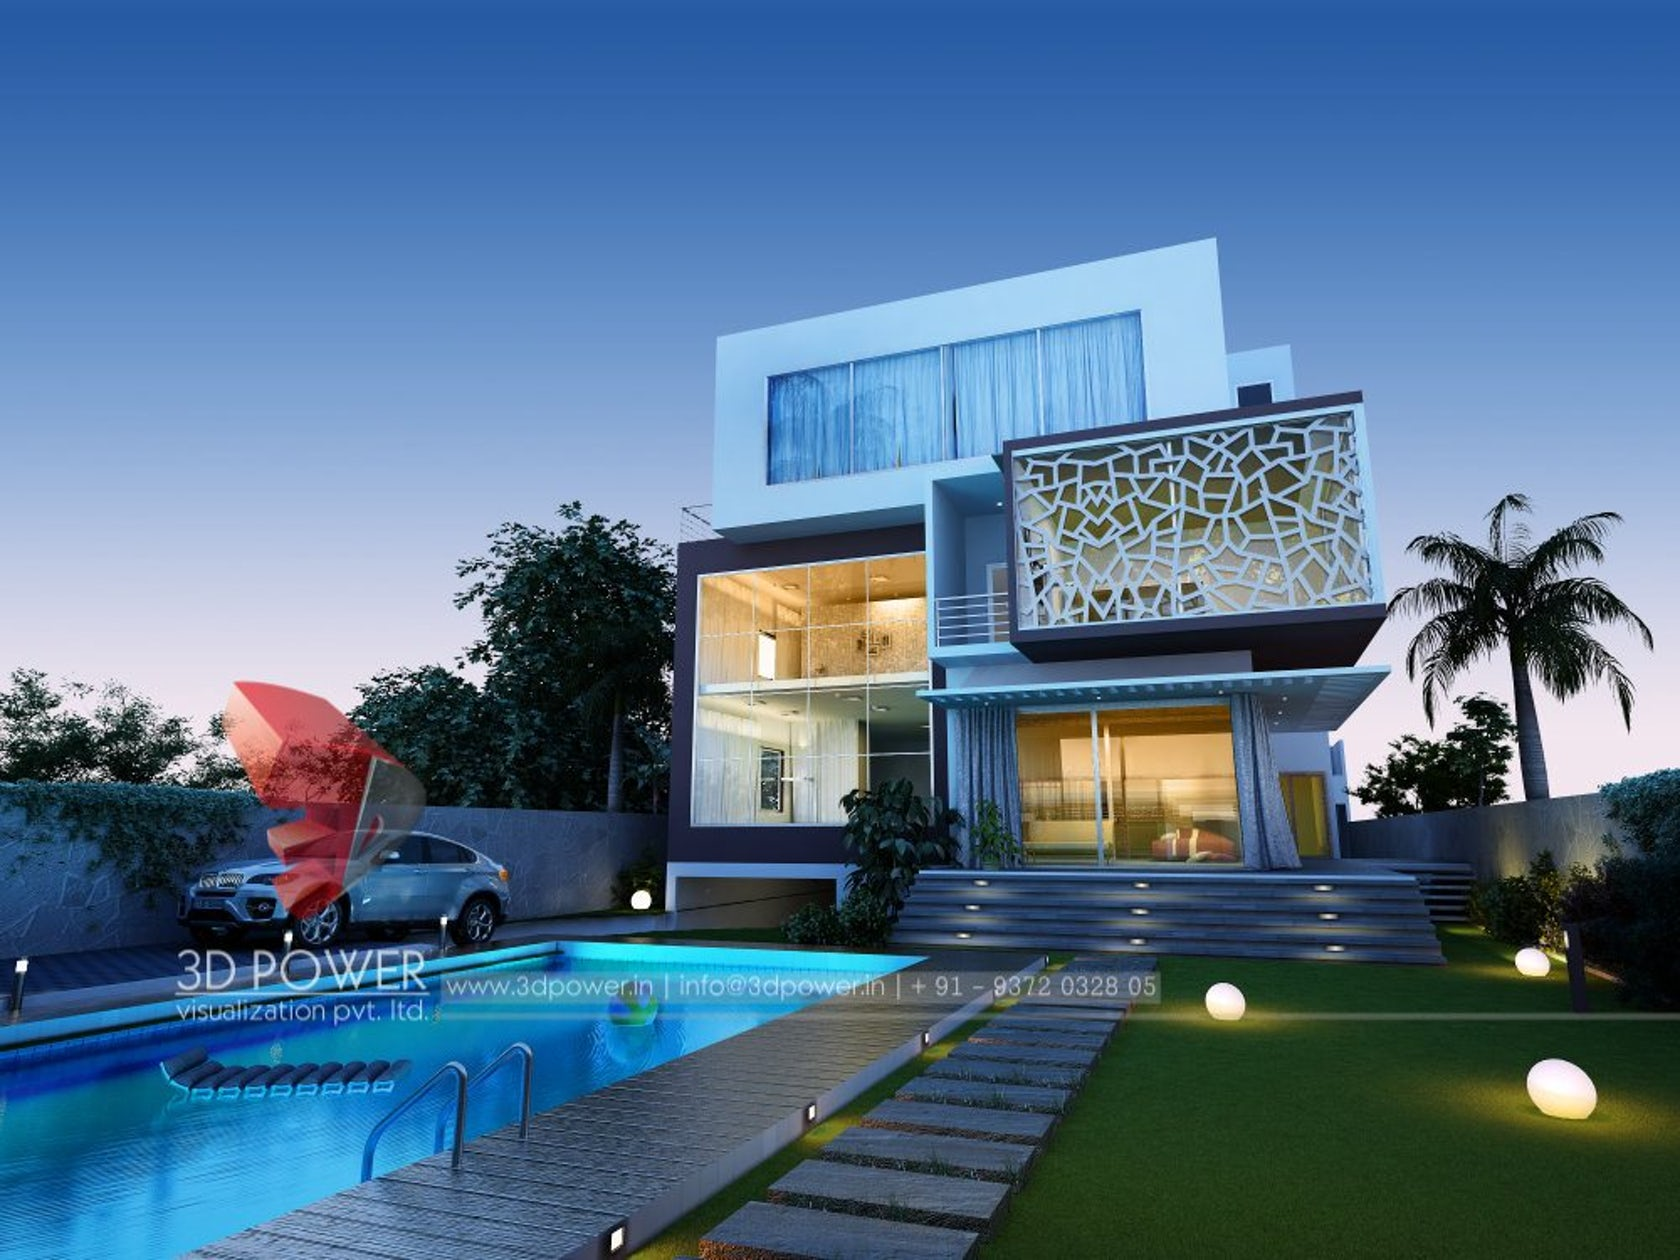 3d power visualization pvt ltd architizer for Exterior design company